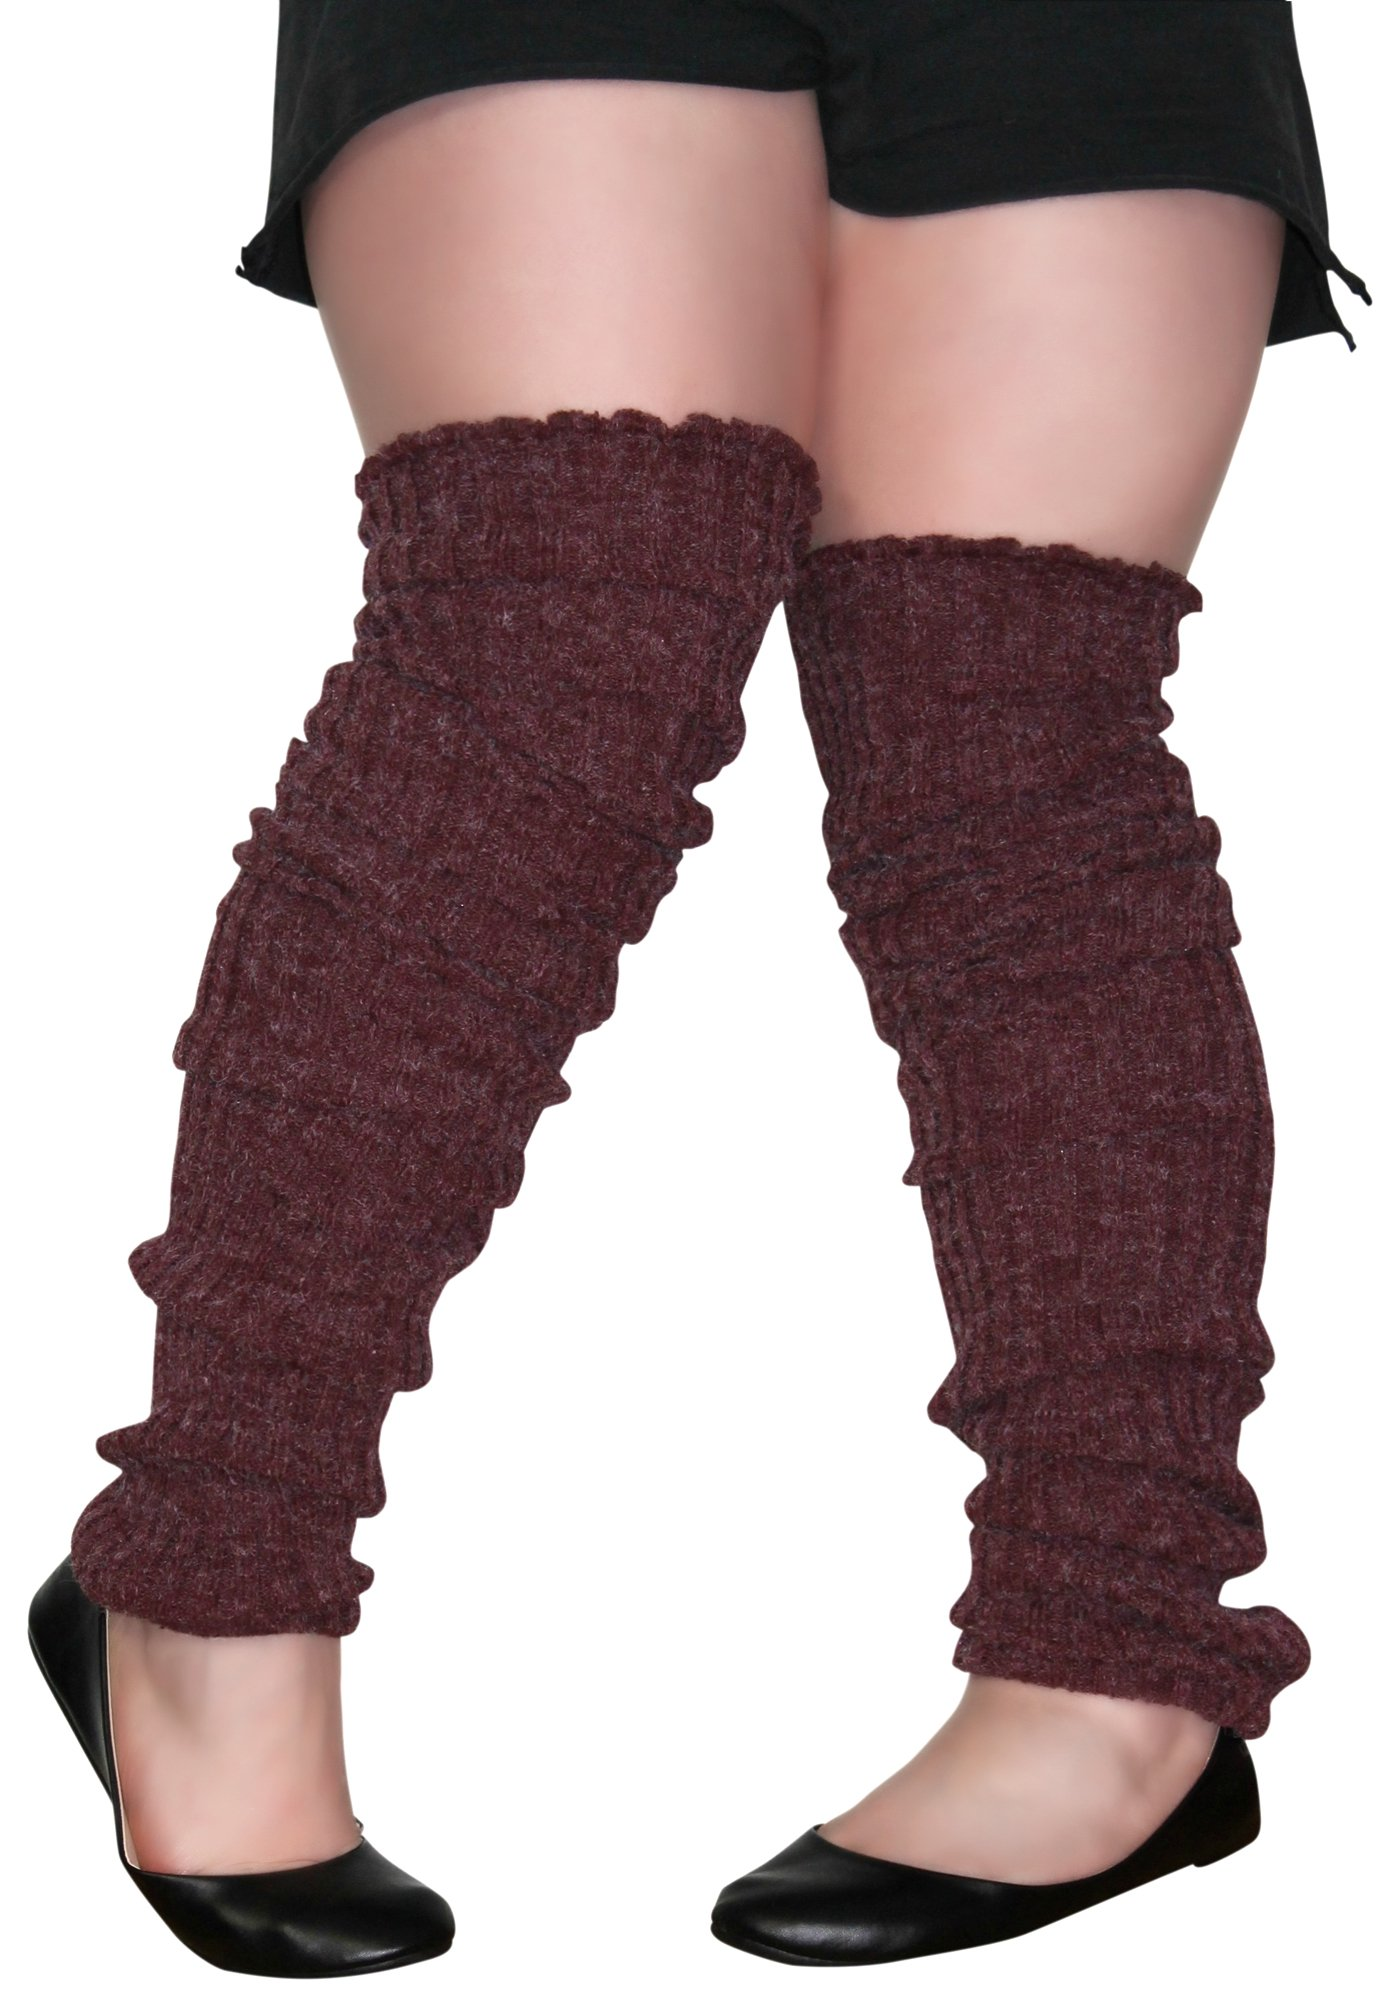 98ddfb3f500 Plus Size Leg Warmers BURGANDY Over The Knee Super Long Cable Knit Leg  Warmer ...